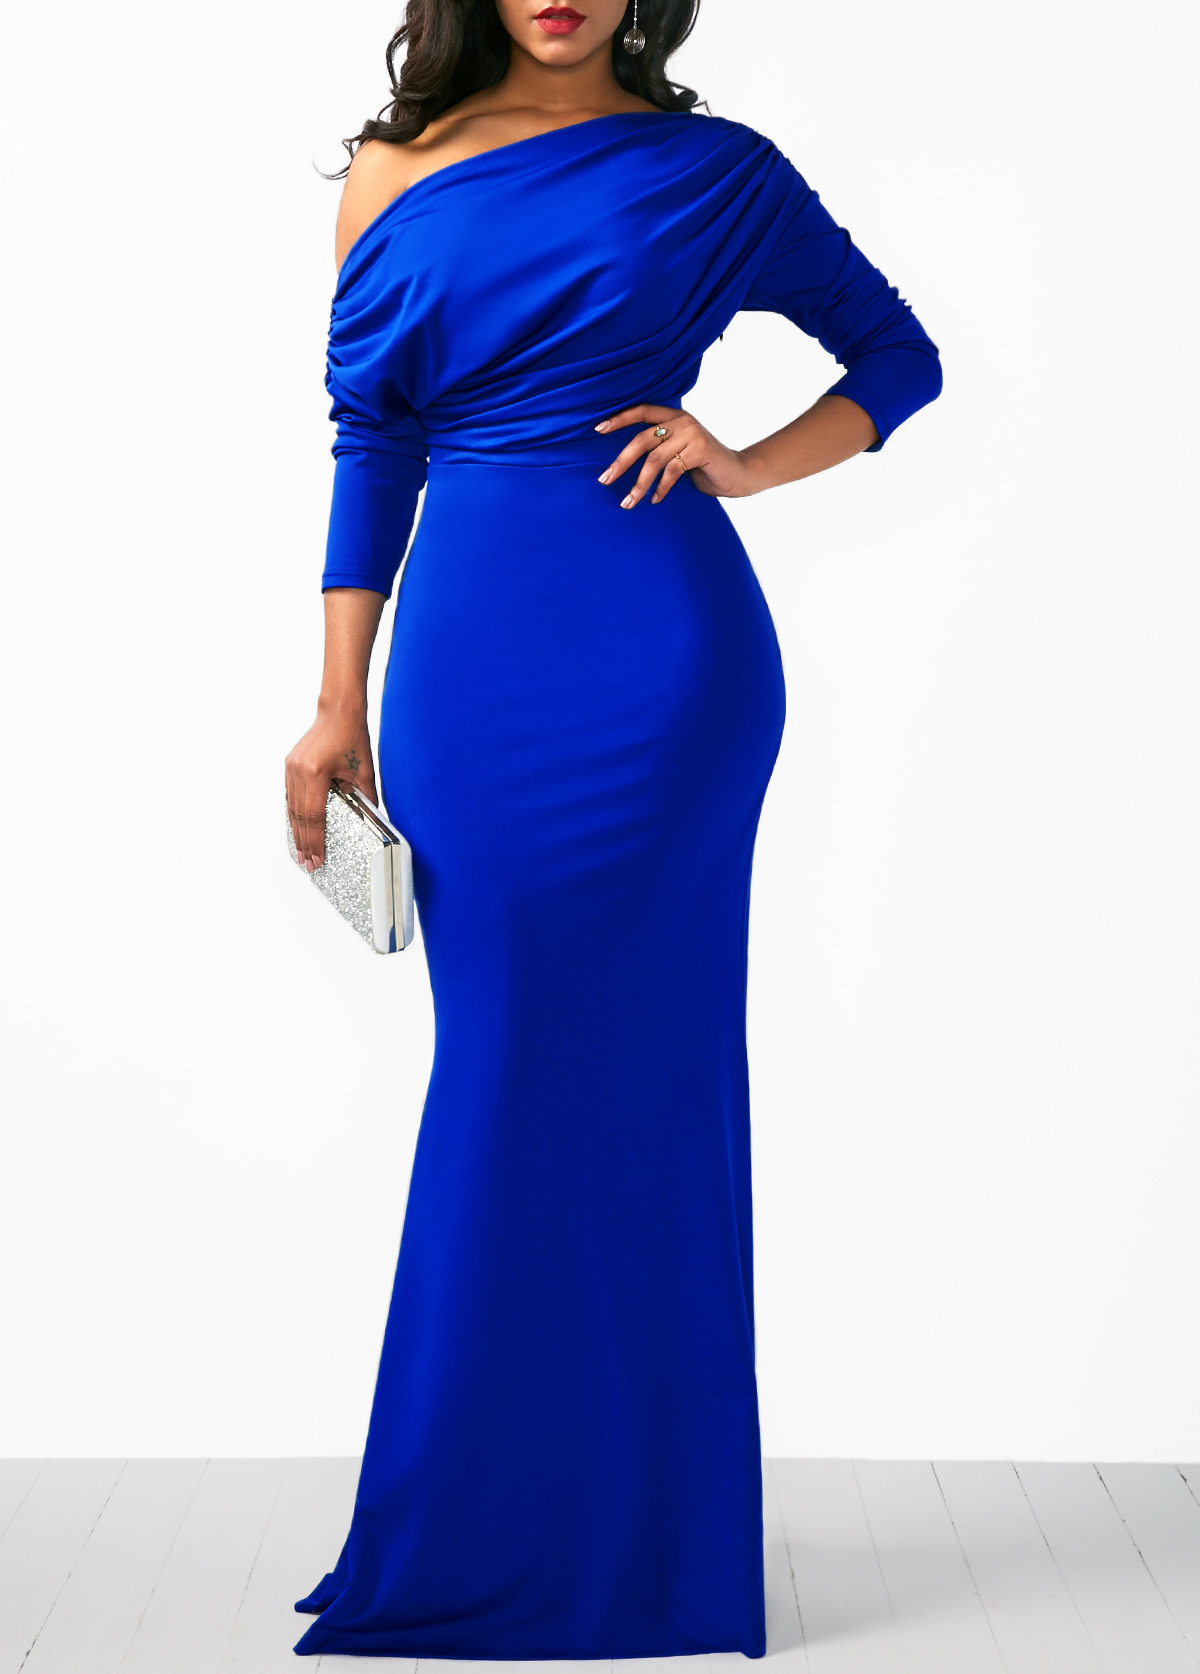 Blue Skew Neck High Waist Mermaid Dress